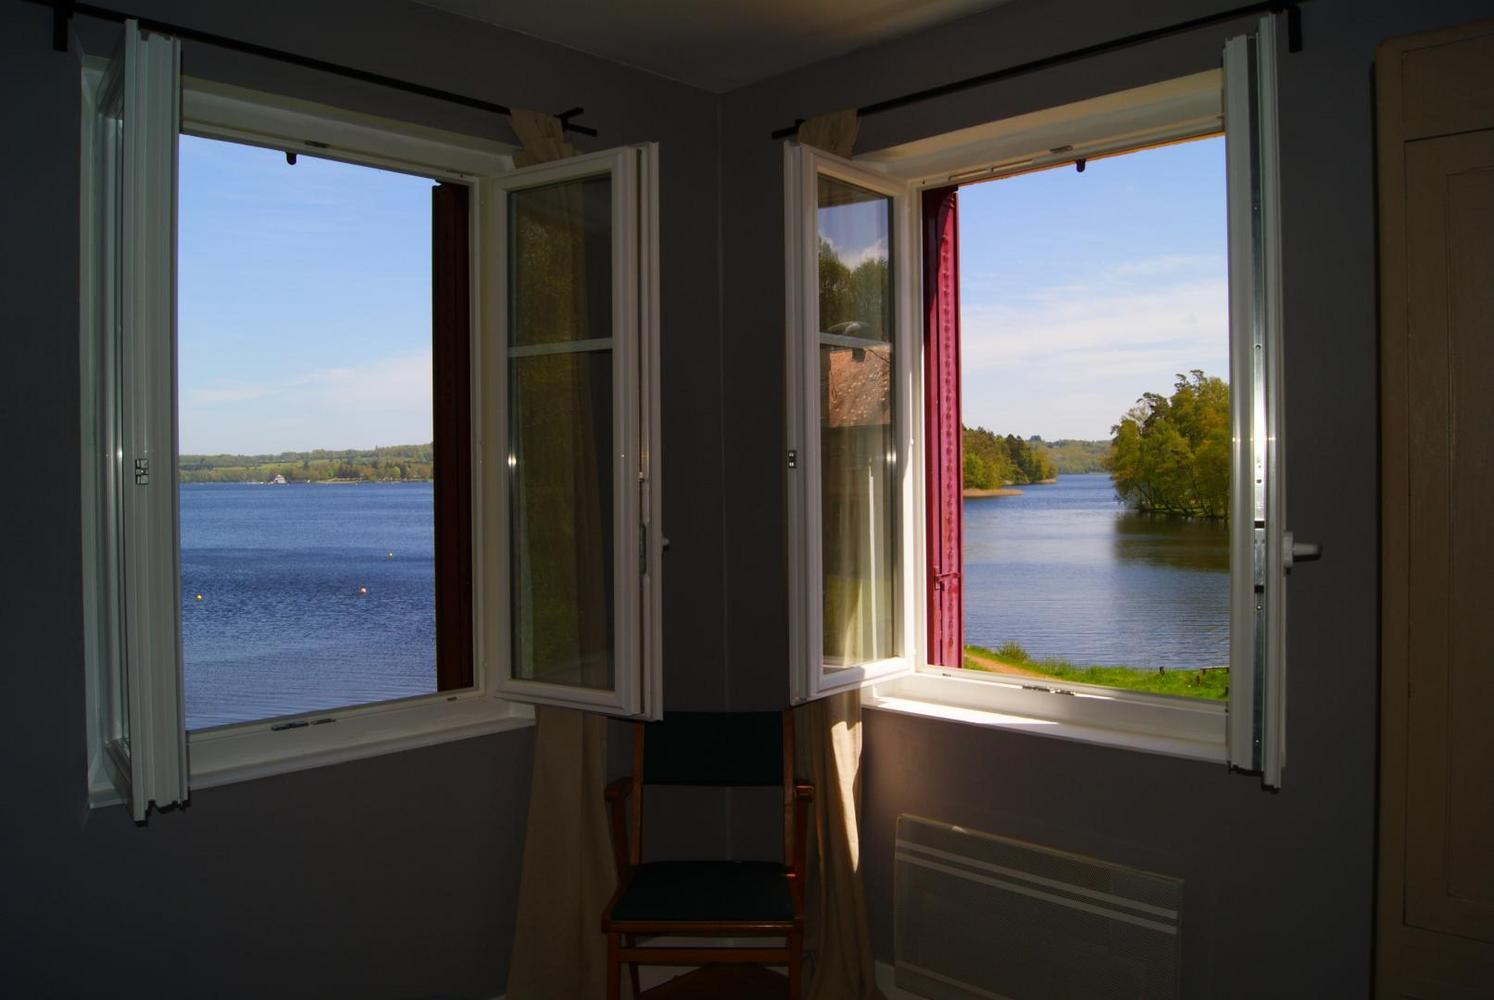 Le Gîte du Lac, Nièvre - photo #34